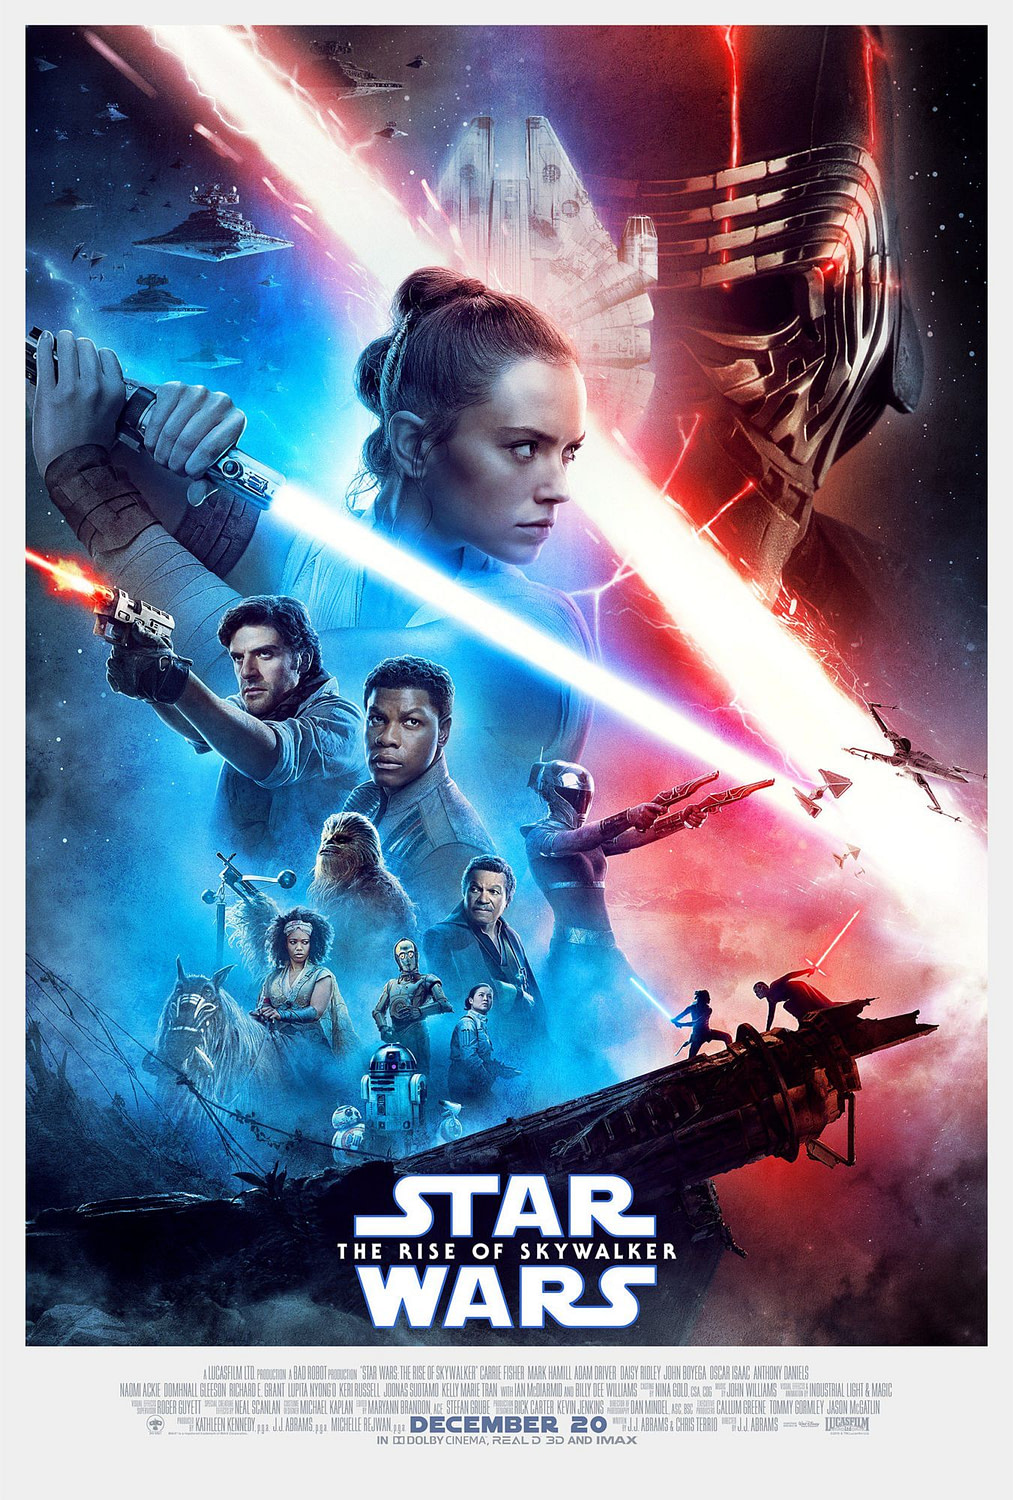 """The Final Trailer and Poster for """"Star Wars: The Rise of Skywalker"""" Drops"""